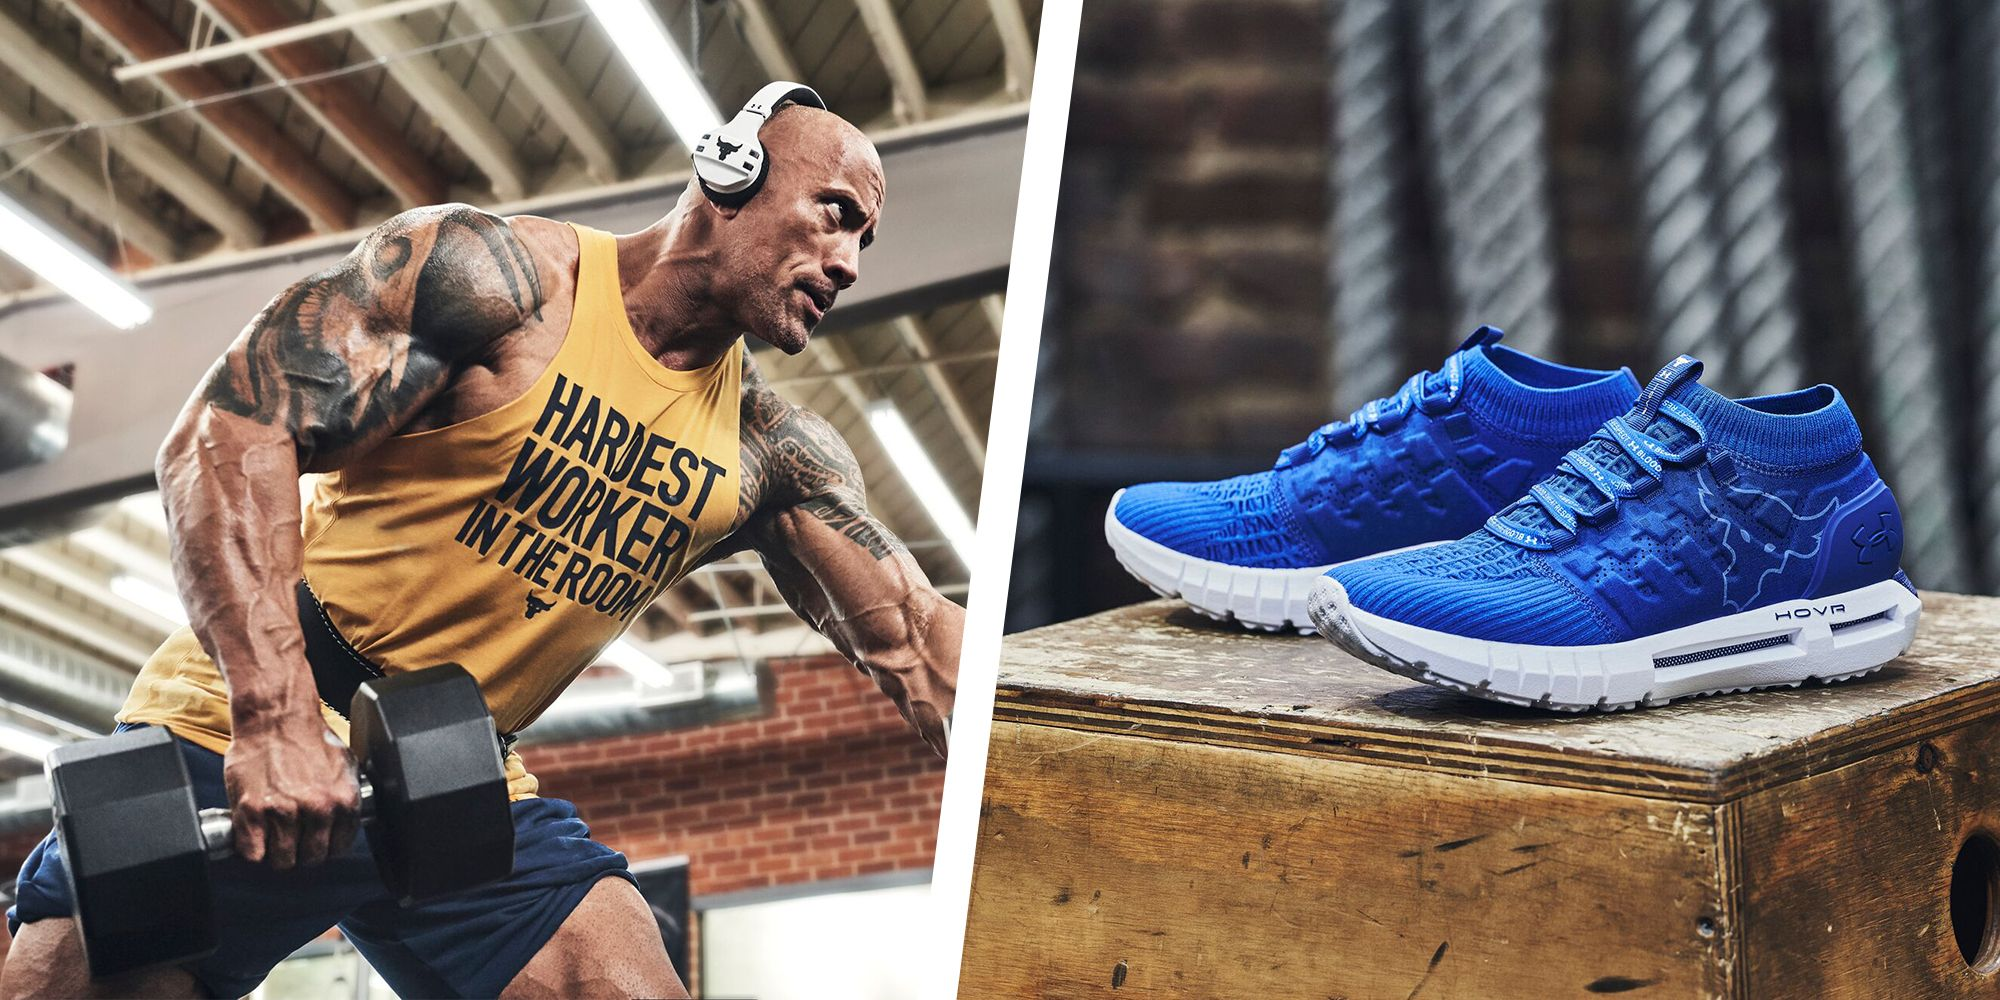 Get Ready to Bend Boundaries With The Rock's Latest Under Armour Drop